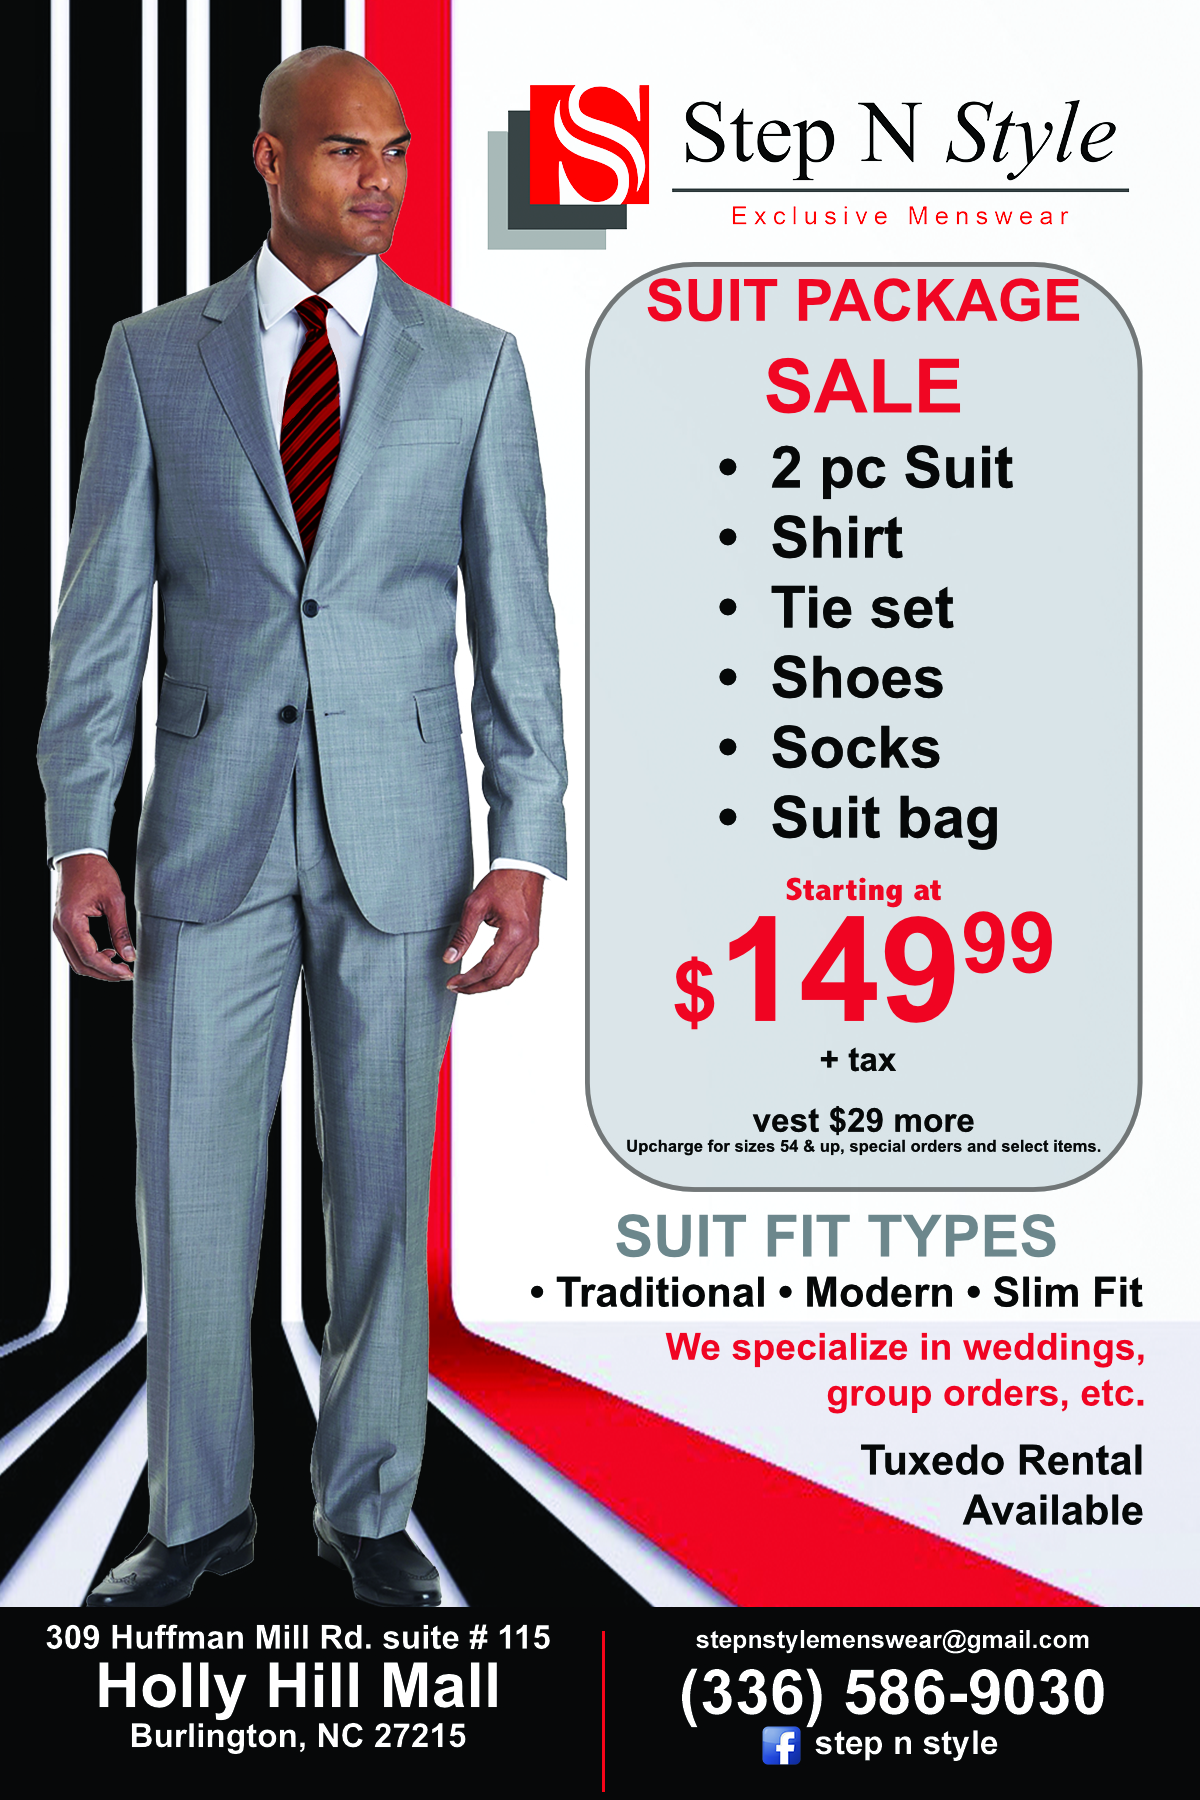 Suit Package Sale